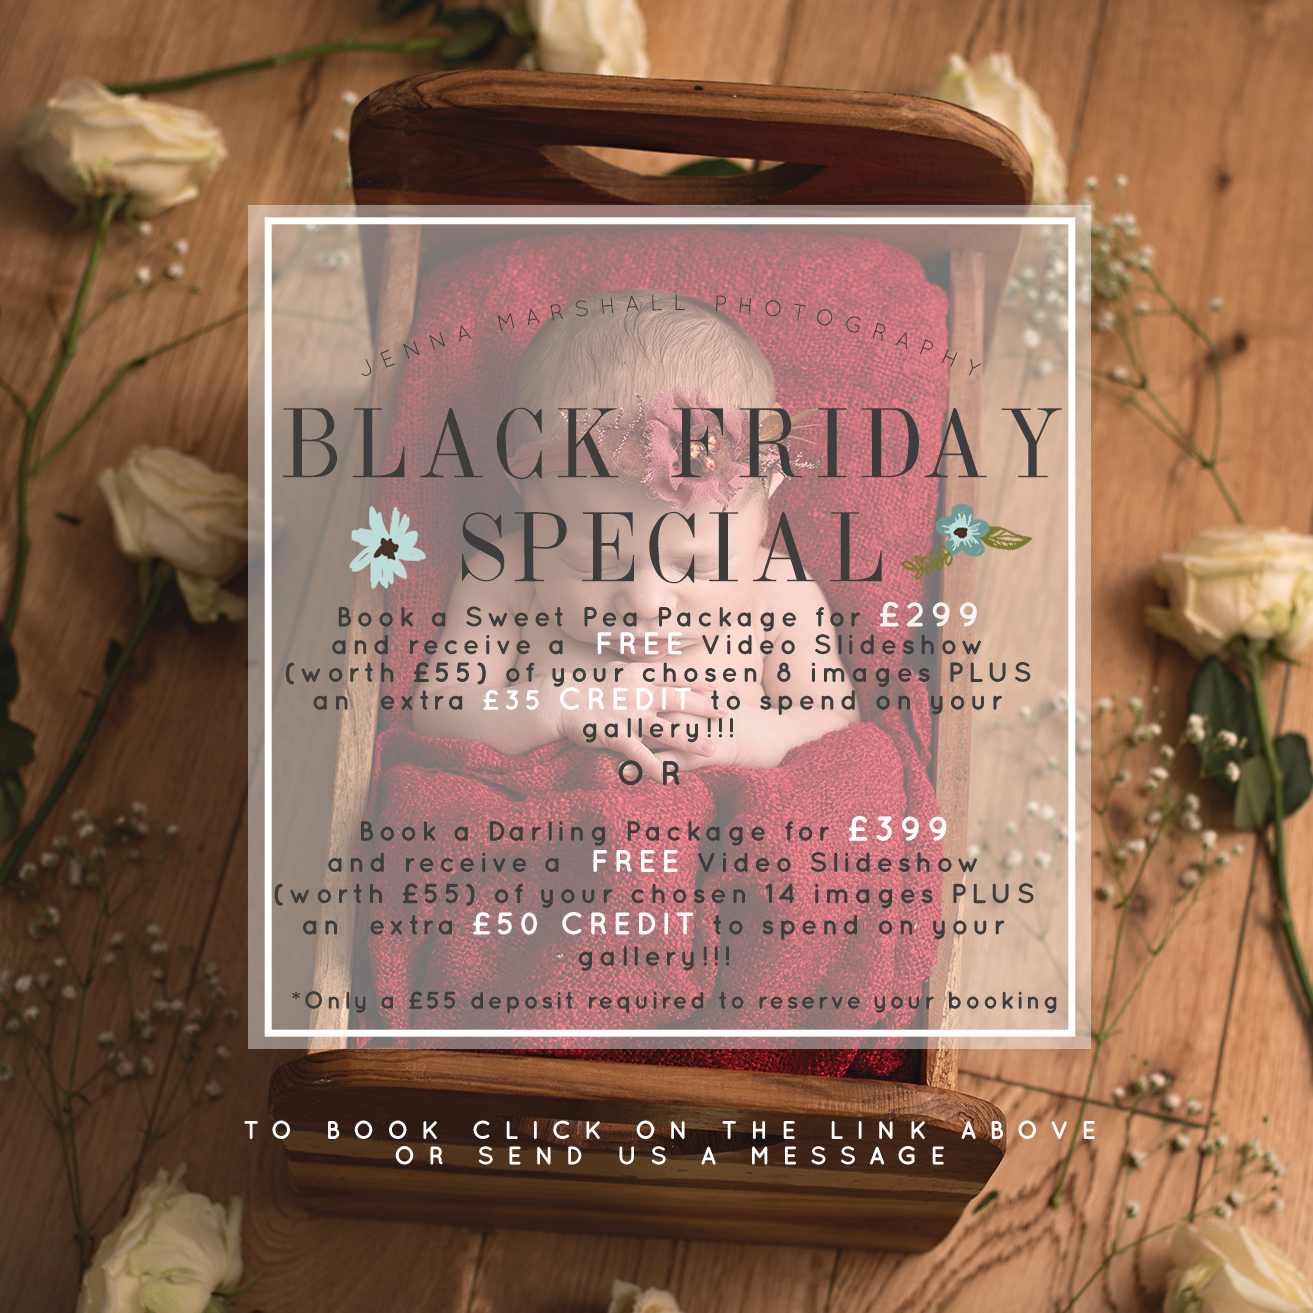 black-friday-jenna-marshall-photography